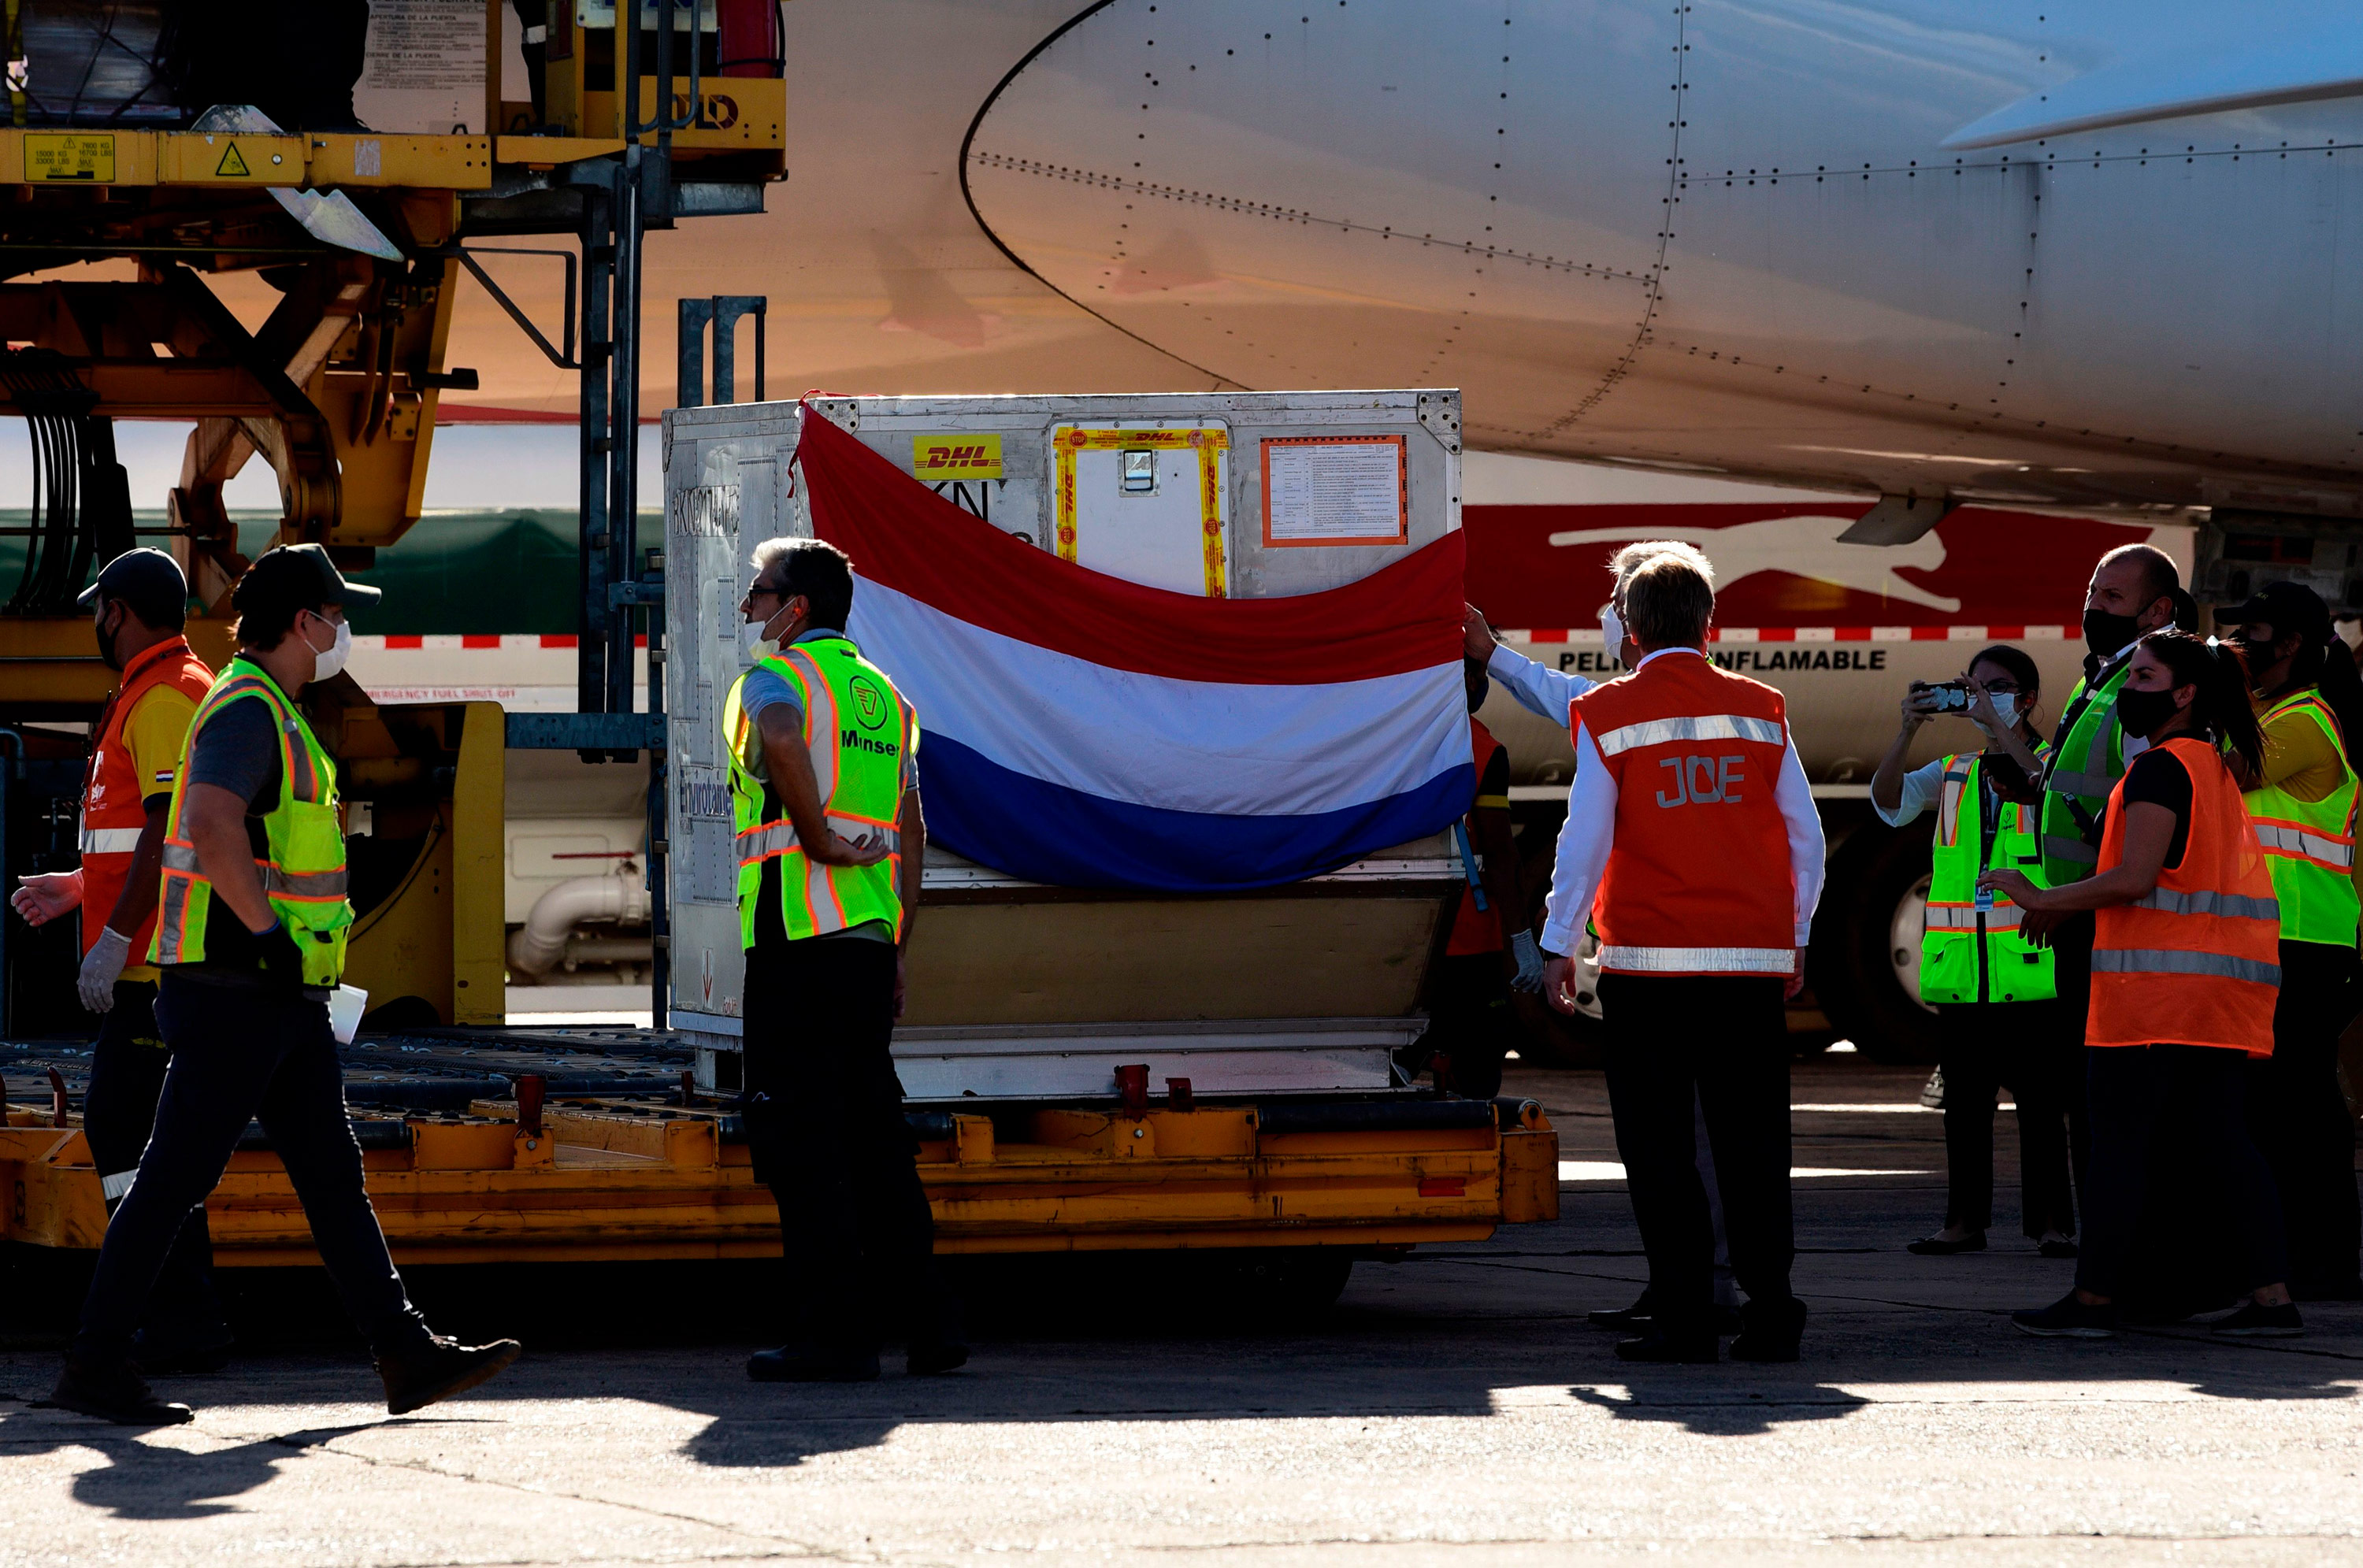 A batch of Russian Sputnik V coronavirus vaccines is unloaded from a plane at Silvio Pettirossi International Airport in Luque, Paraguay, on February 18.